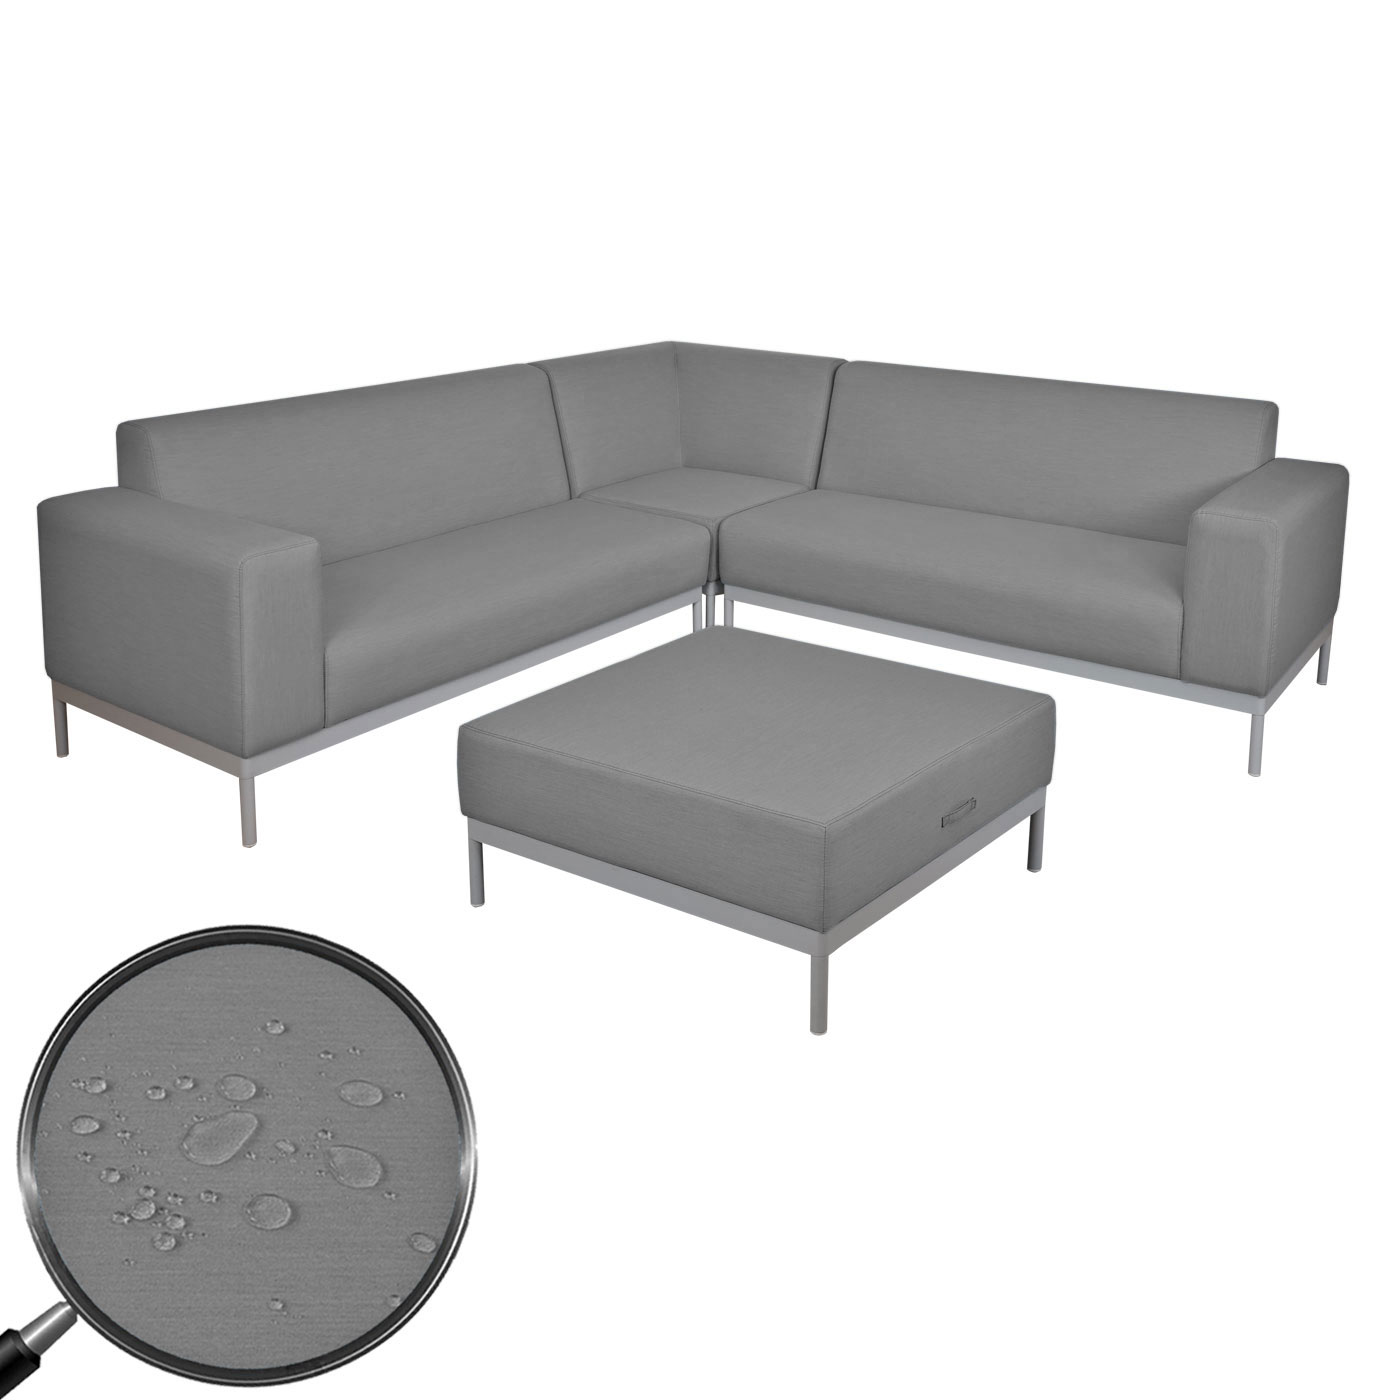 alu garten garnitur hwc c47 sofa lounge set textil. Black Bedroom Furniture Sets. Home Design Ideas